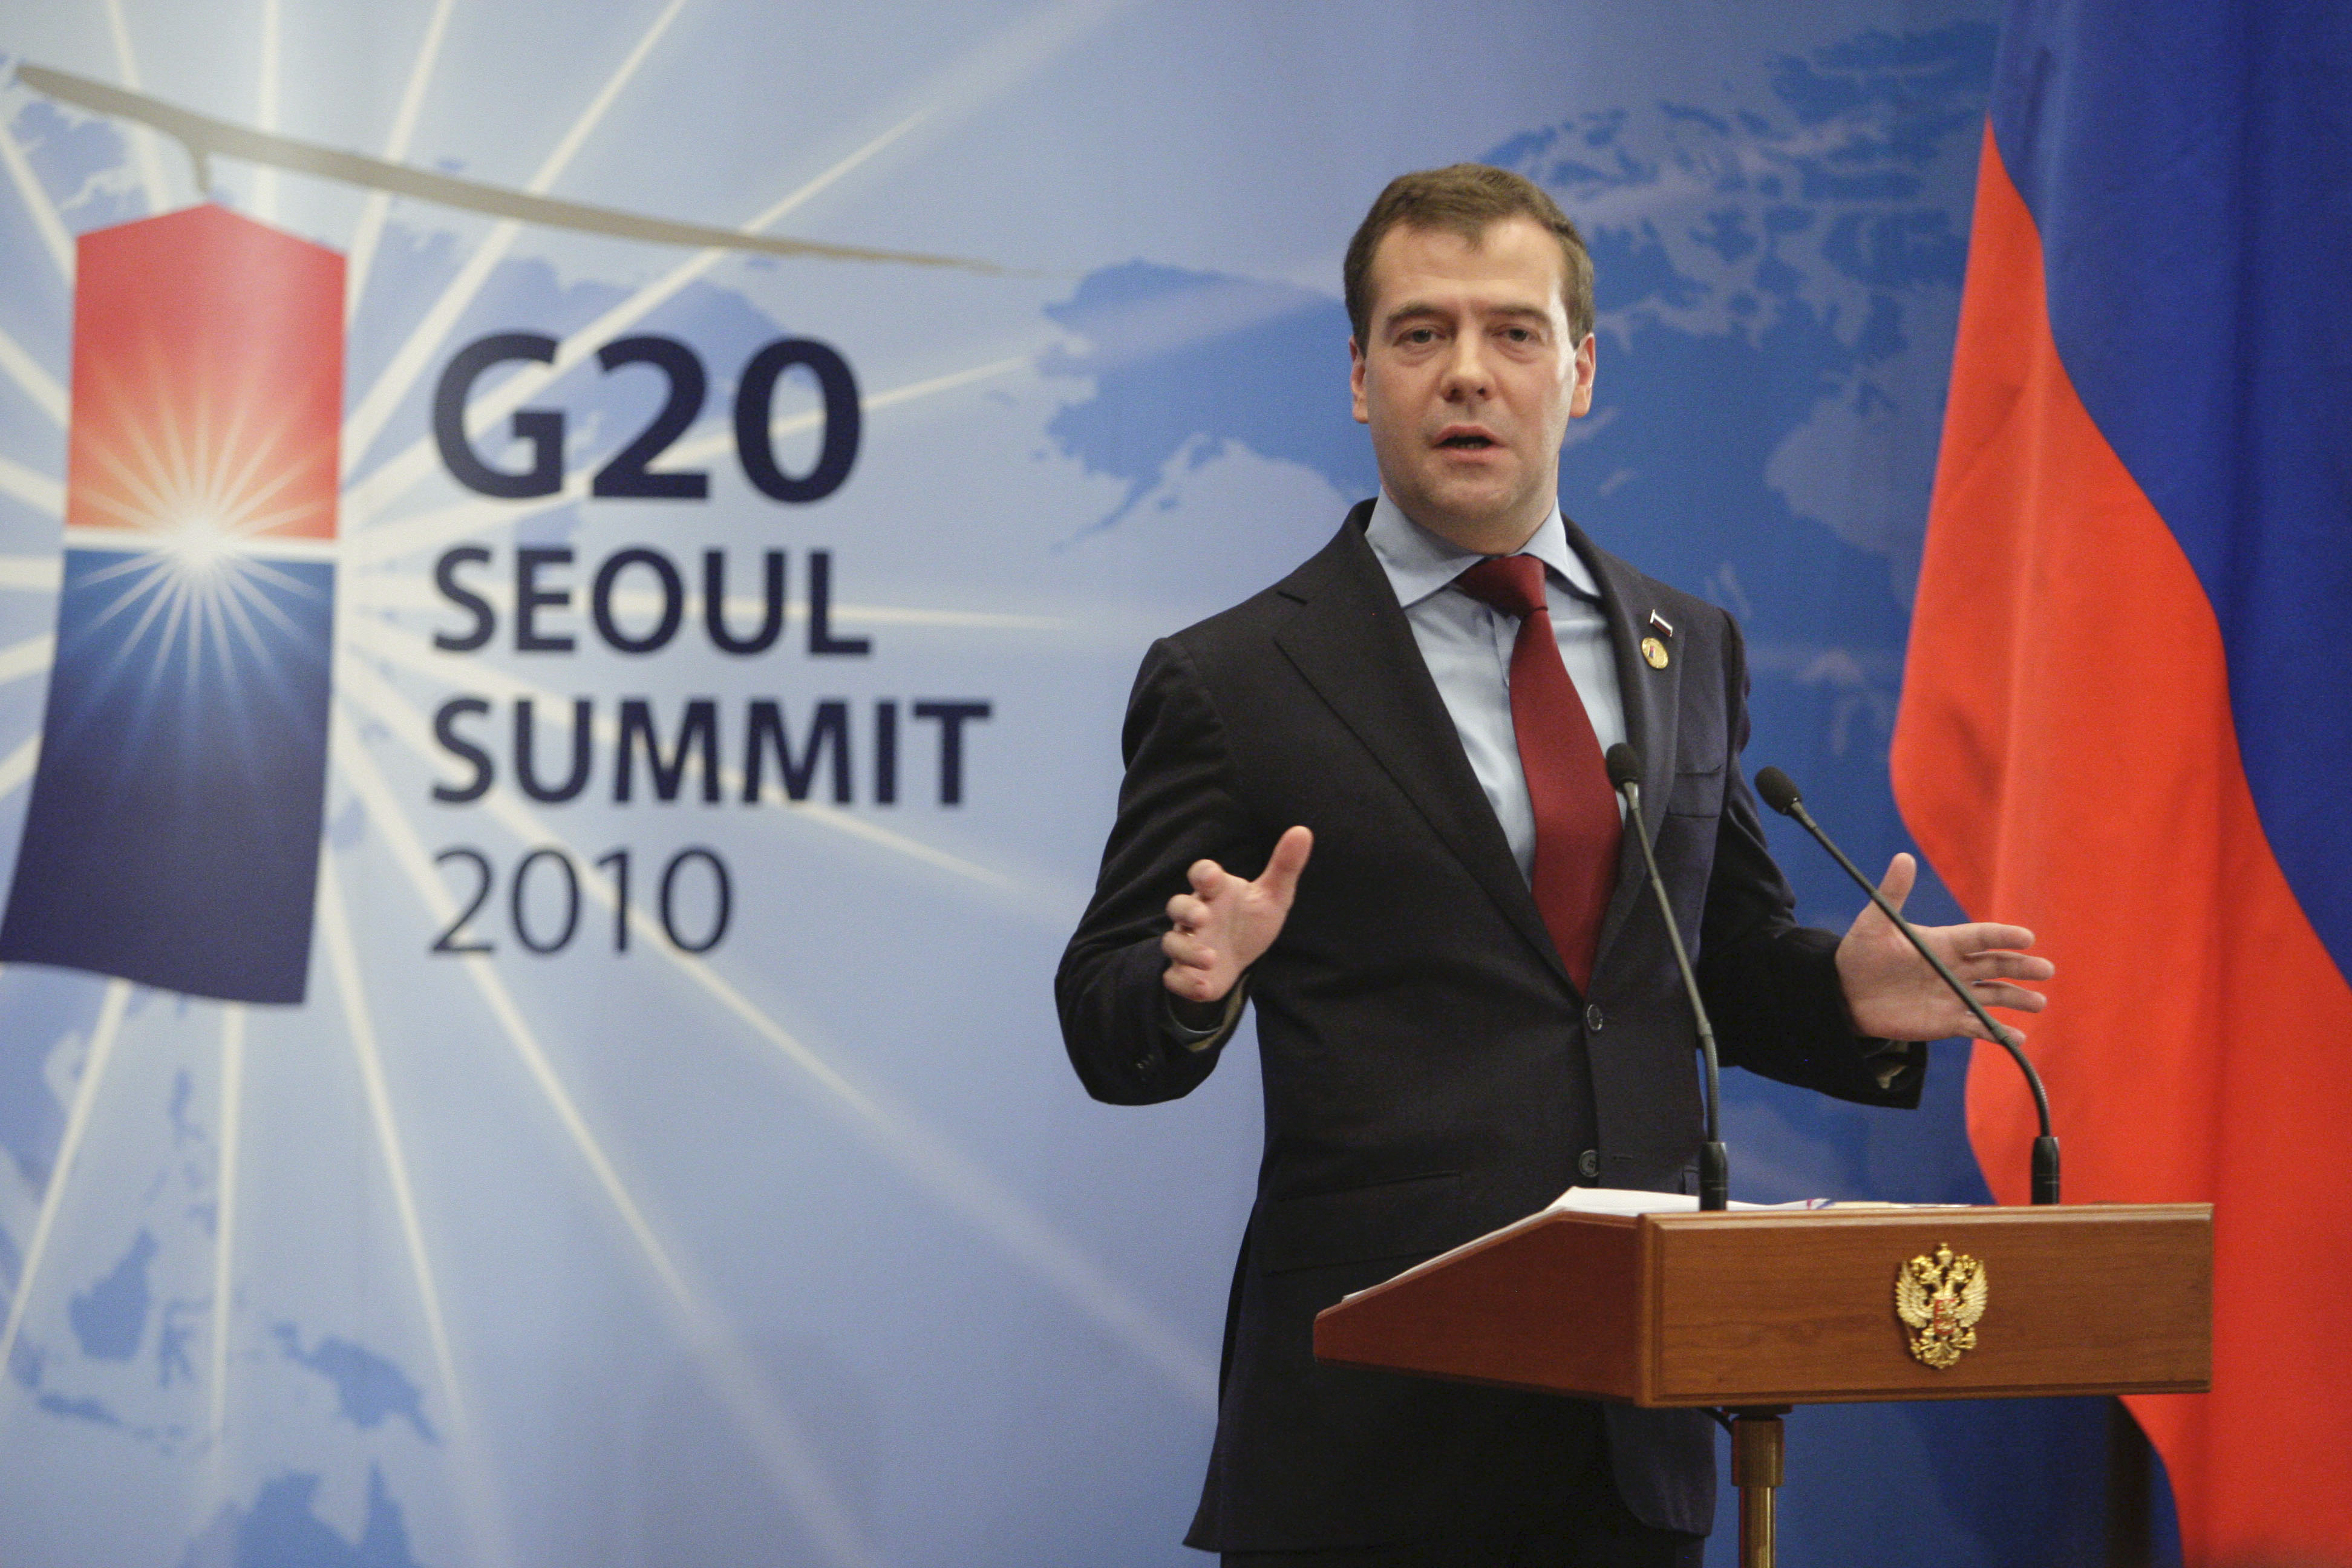 Russian president Dimitry Medvedev speaks to reporters at the conclusion of the G20 summit in Seoul.